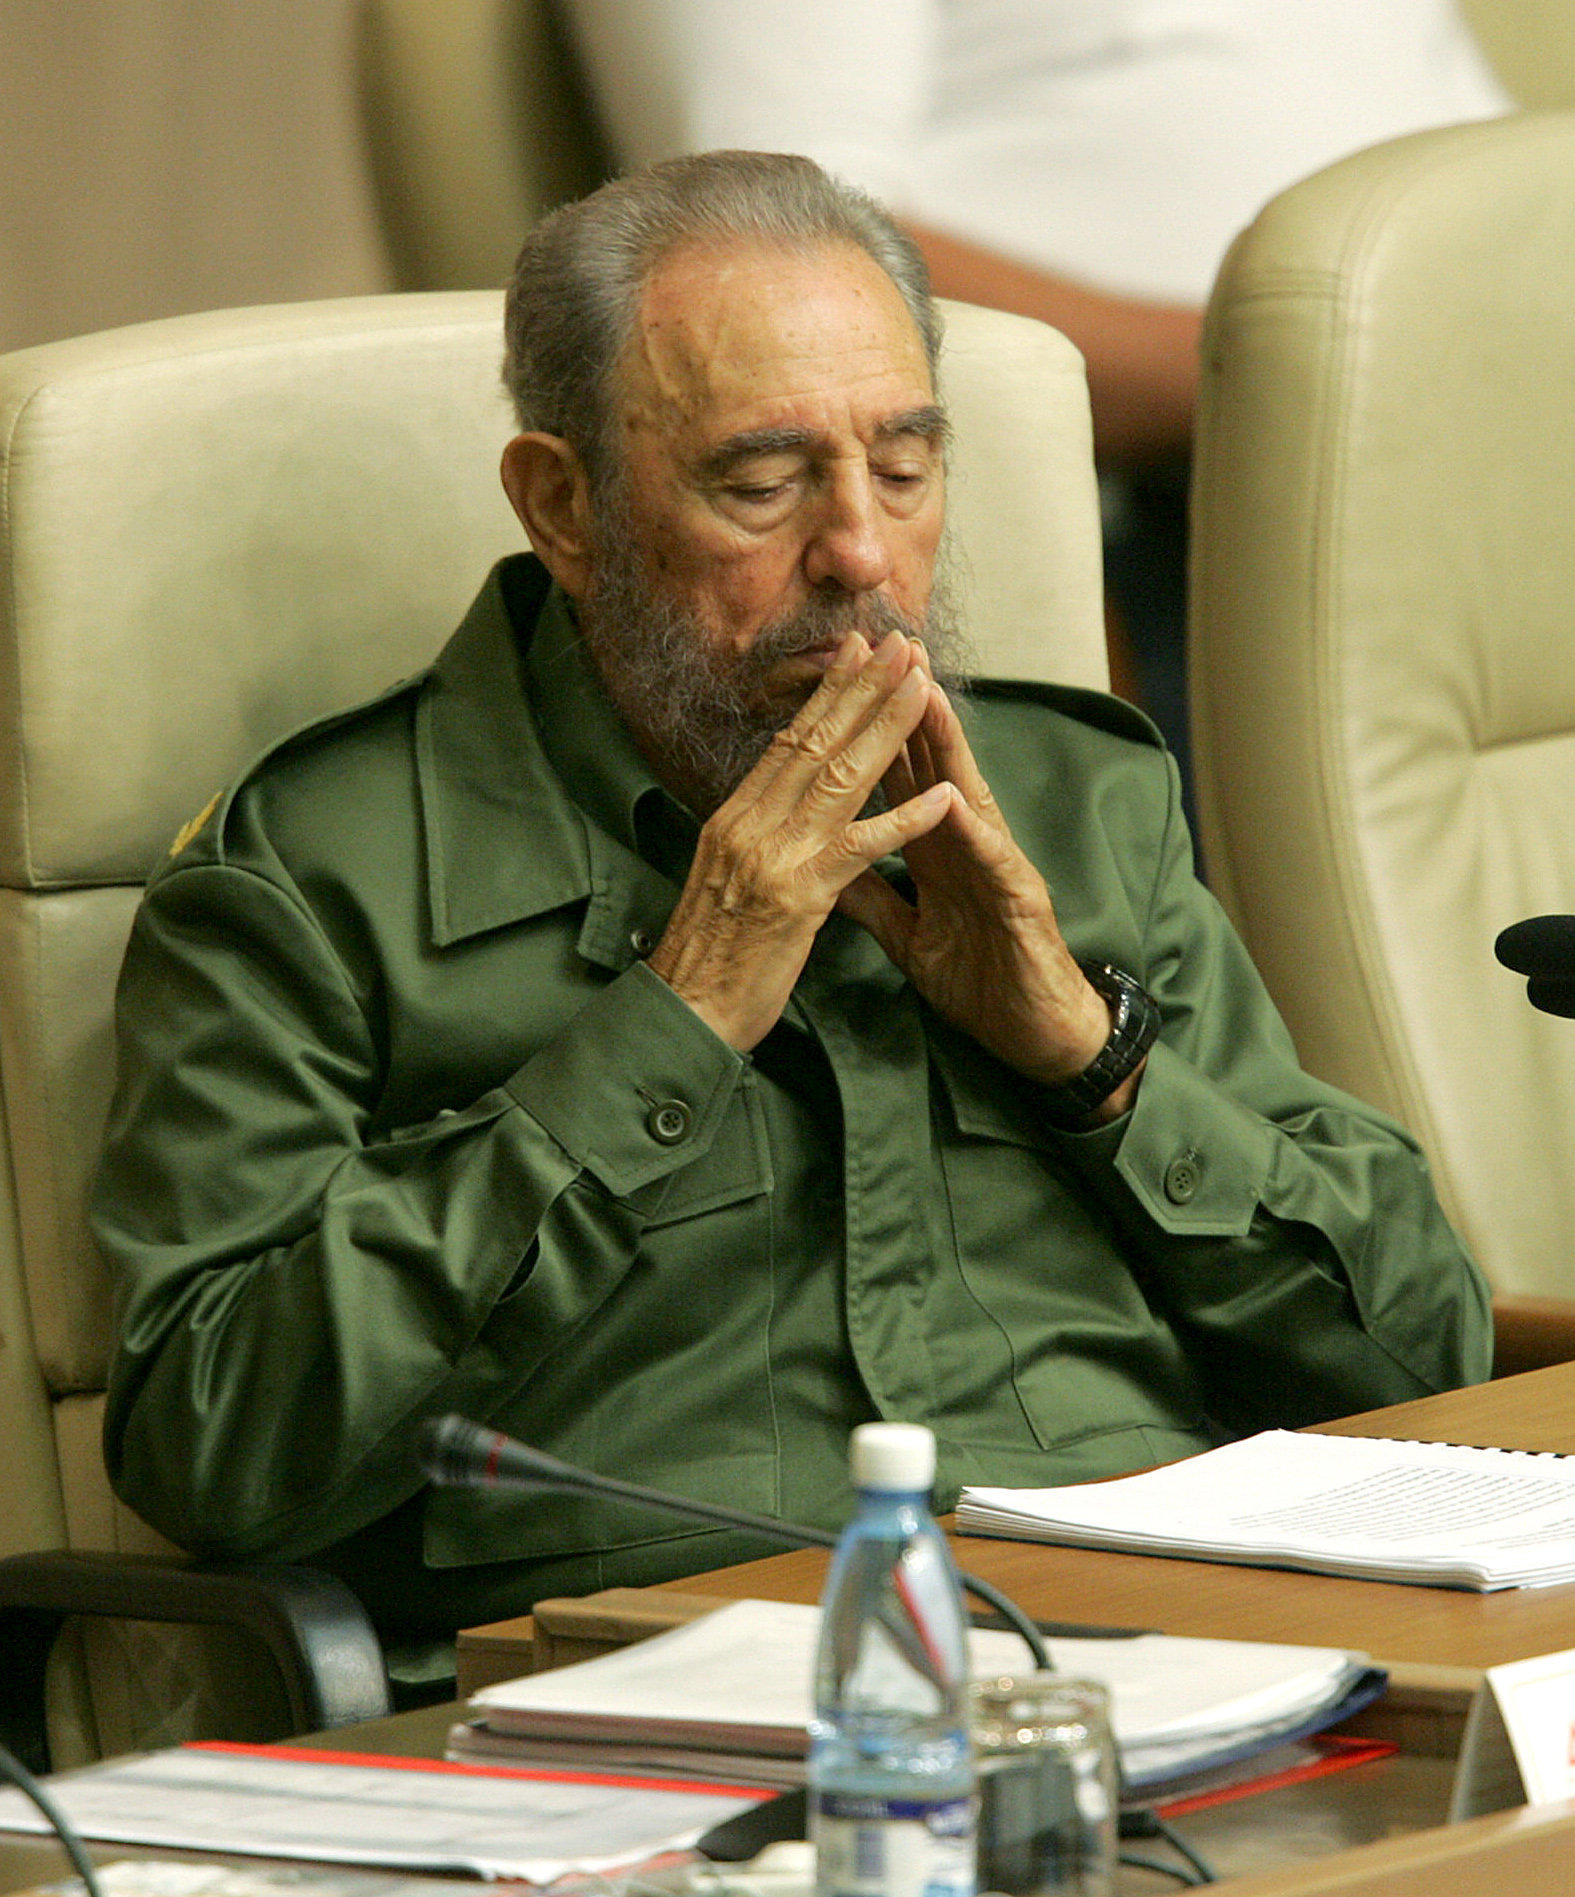 This file photo taken on June 9, 2006 shows Cuban president Fidel Castro attending the closing ceremony at the International Seminar on Literacy and Post Literacy Policies, in Havana